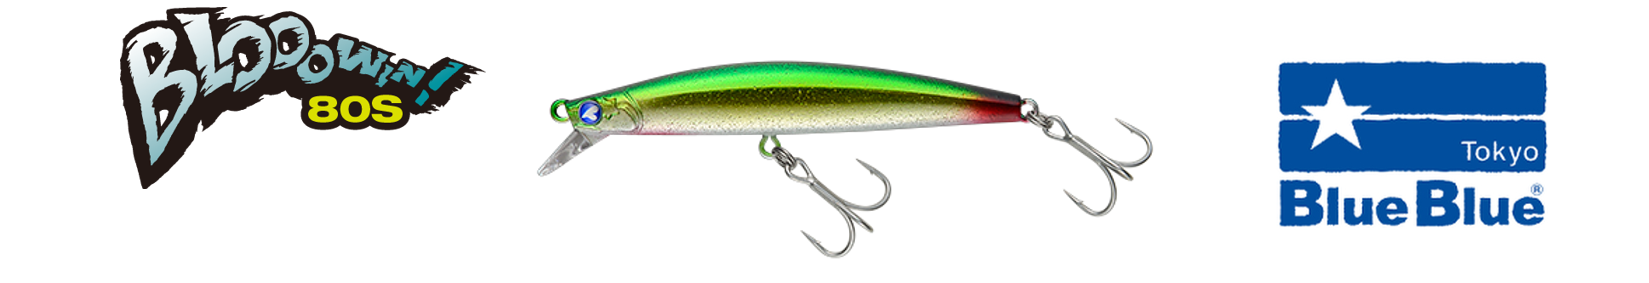 blue-blue-blooowin-85s-bass-lures.png